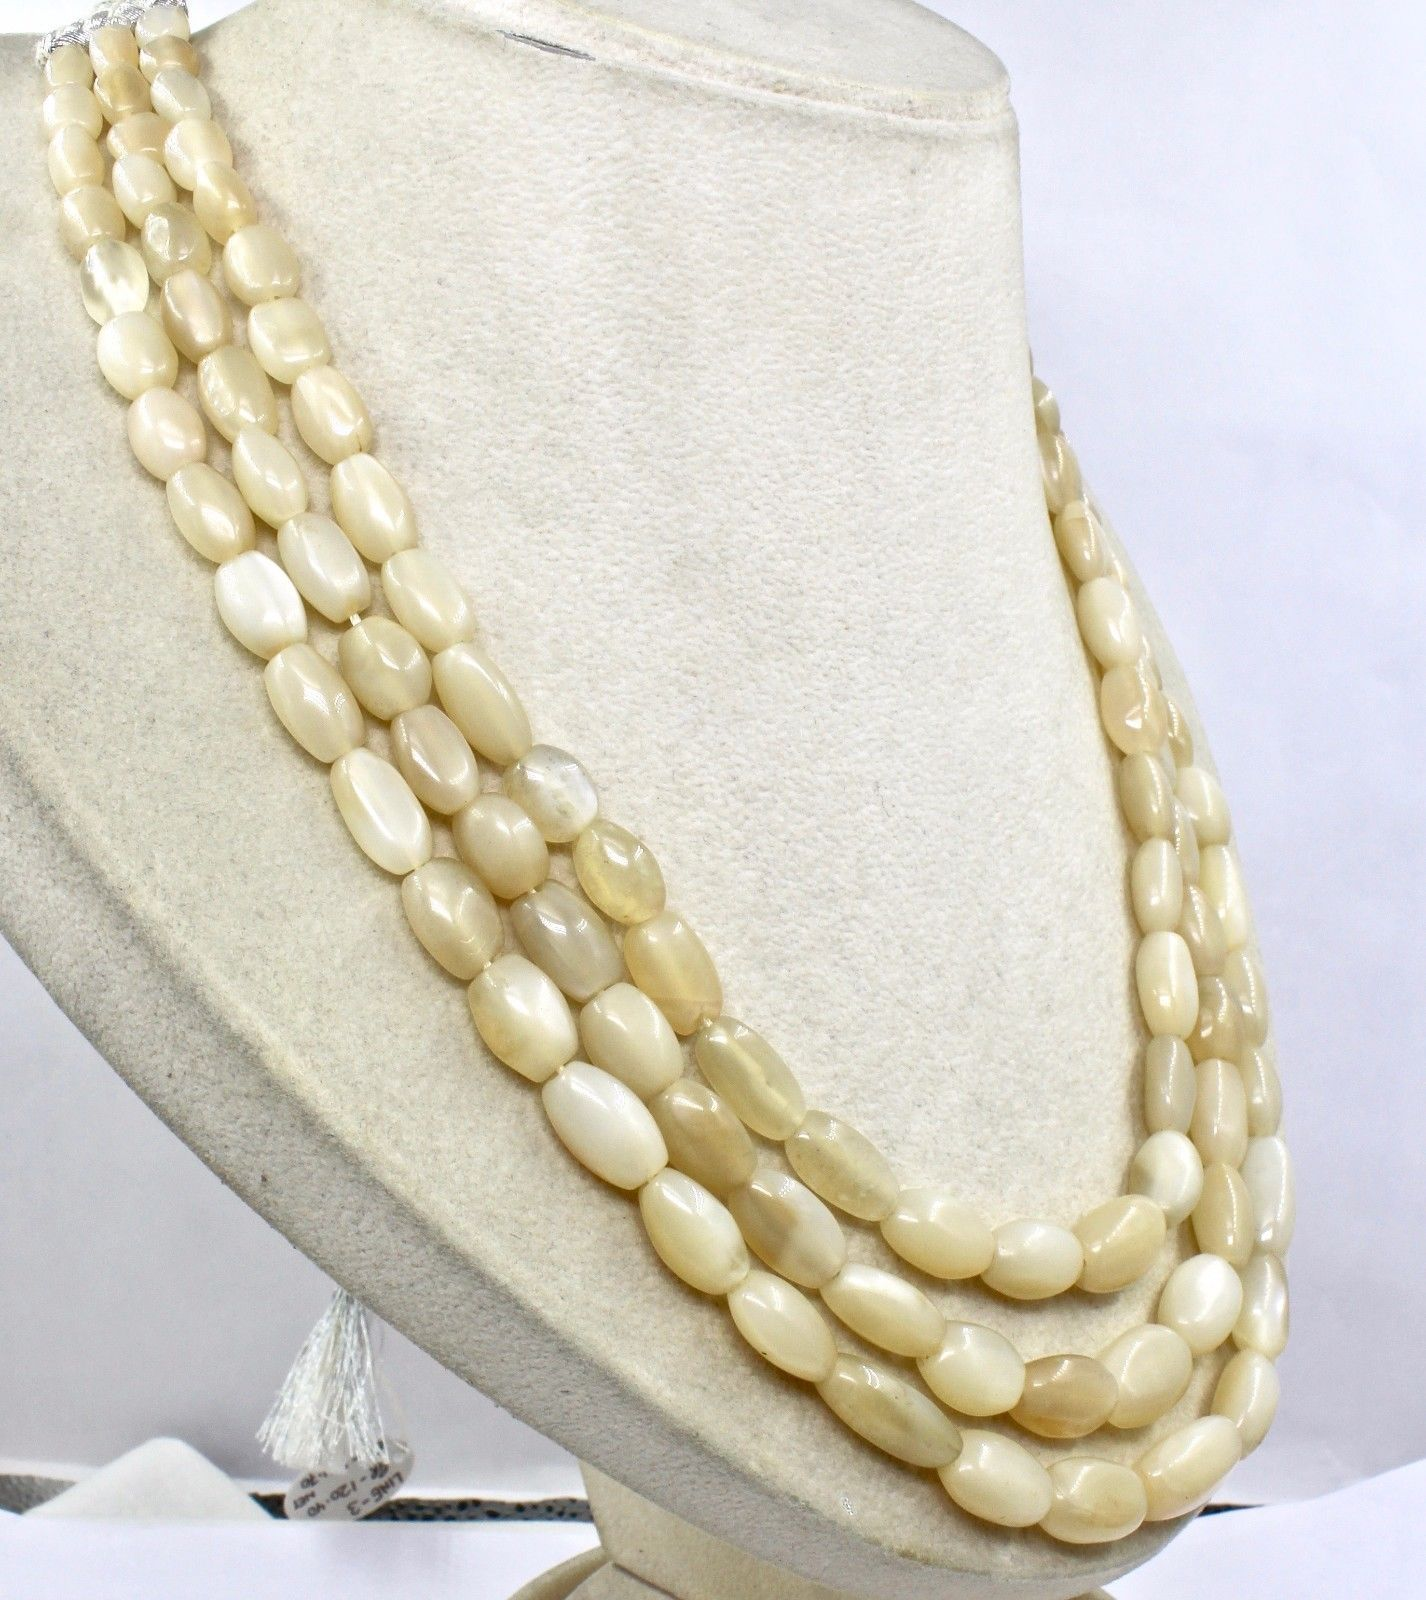 3 LINE 602 CTS MOONSTONE LONG CABOCHON BEADS STRING NECKLACE FOR LADIES